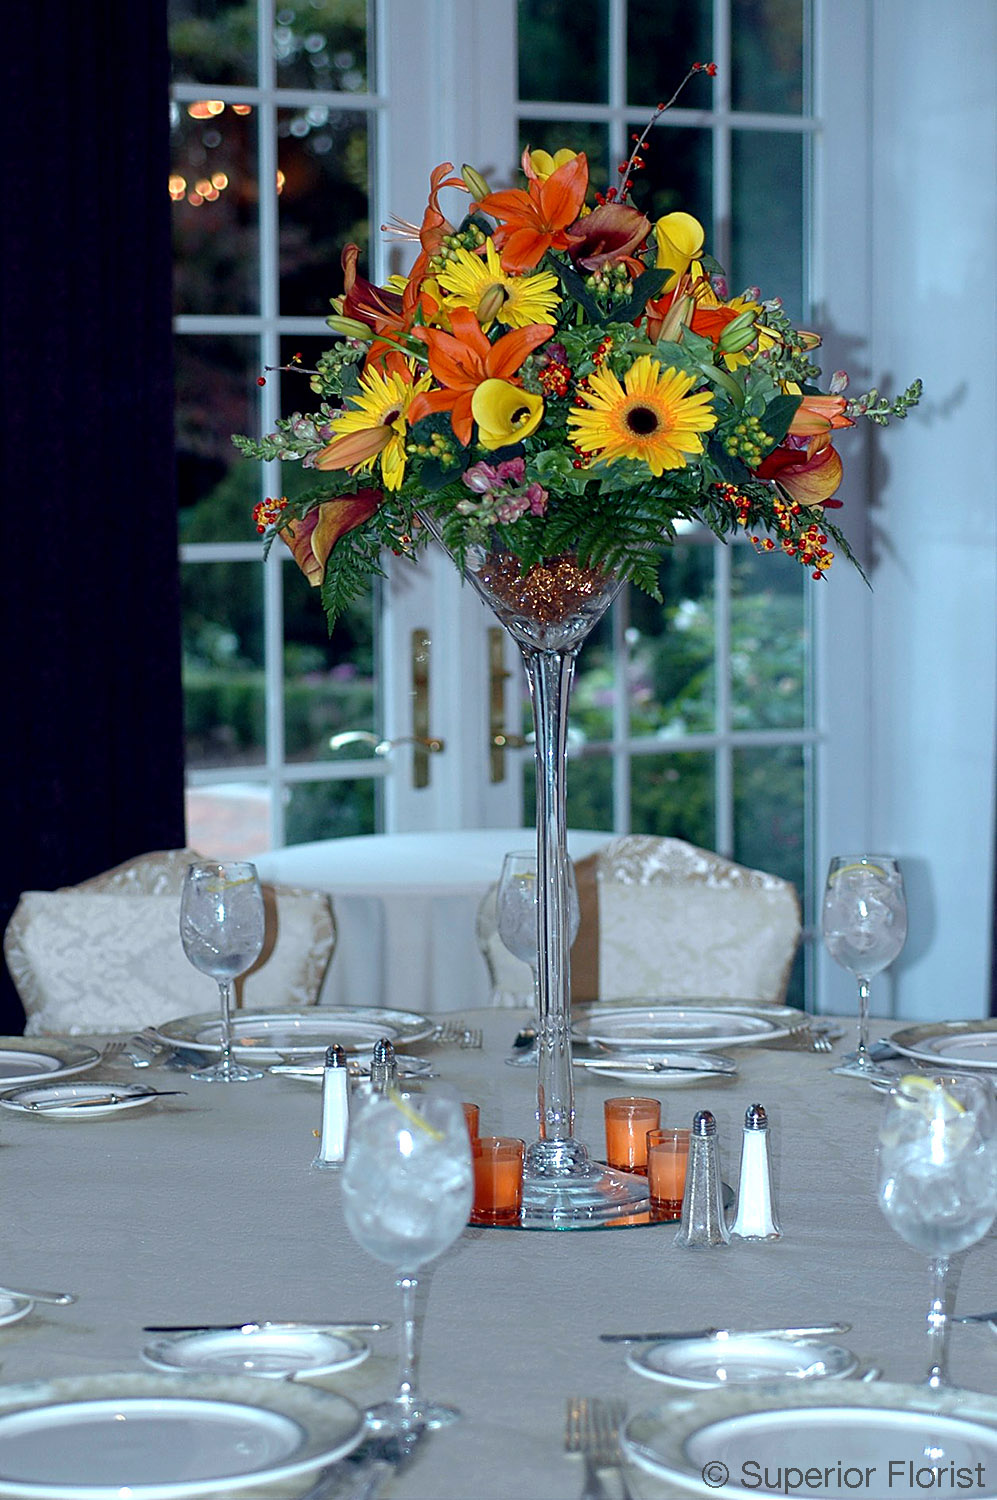 Superior Florist – Centerpieces:  Autumn flowers including Callas, Lilies, Gerberas, Hypericums and bittersweet arranged in a large martini glass vase.